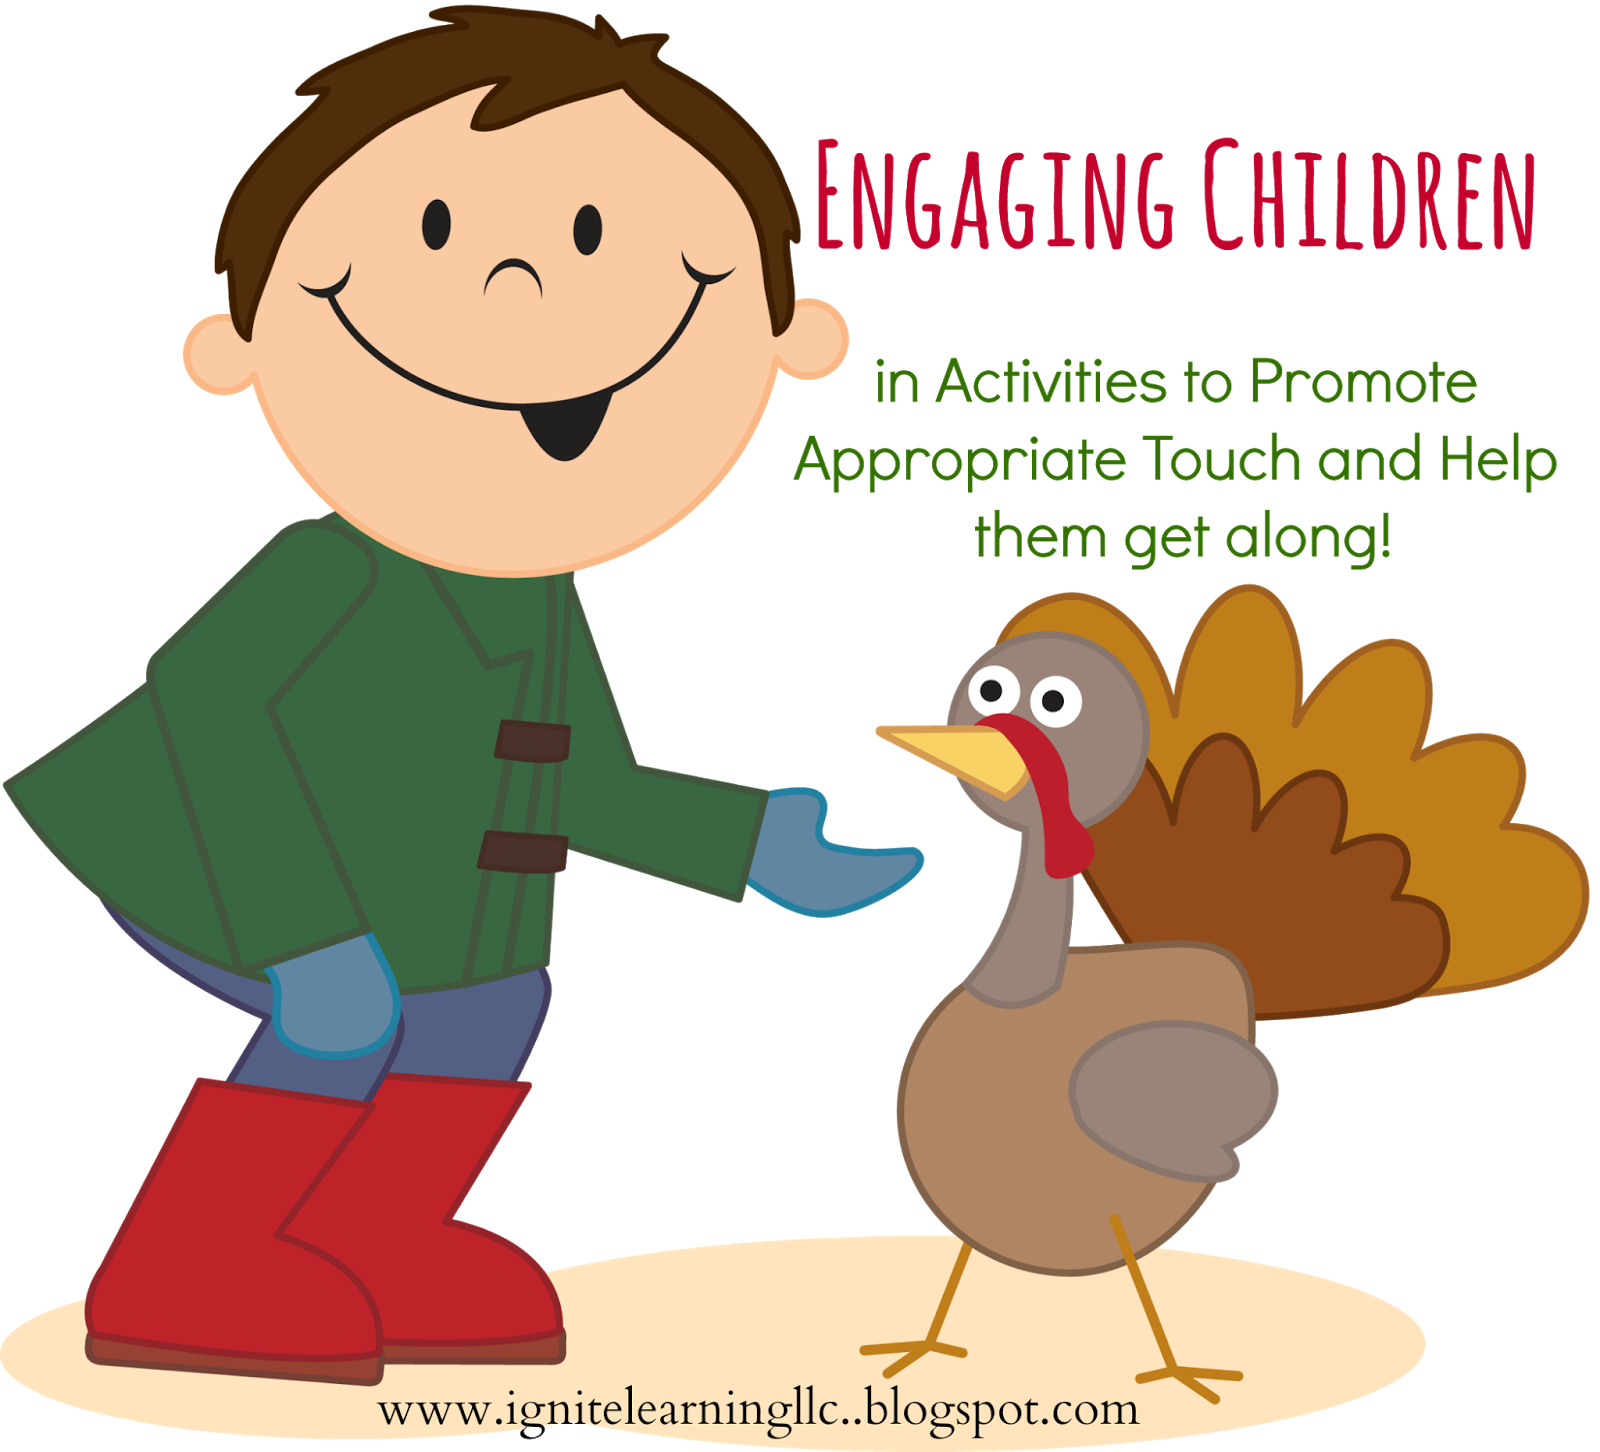 banner royalty free Kids pushing each other clipart. Do you have trouble